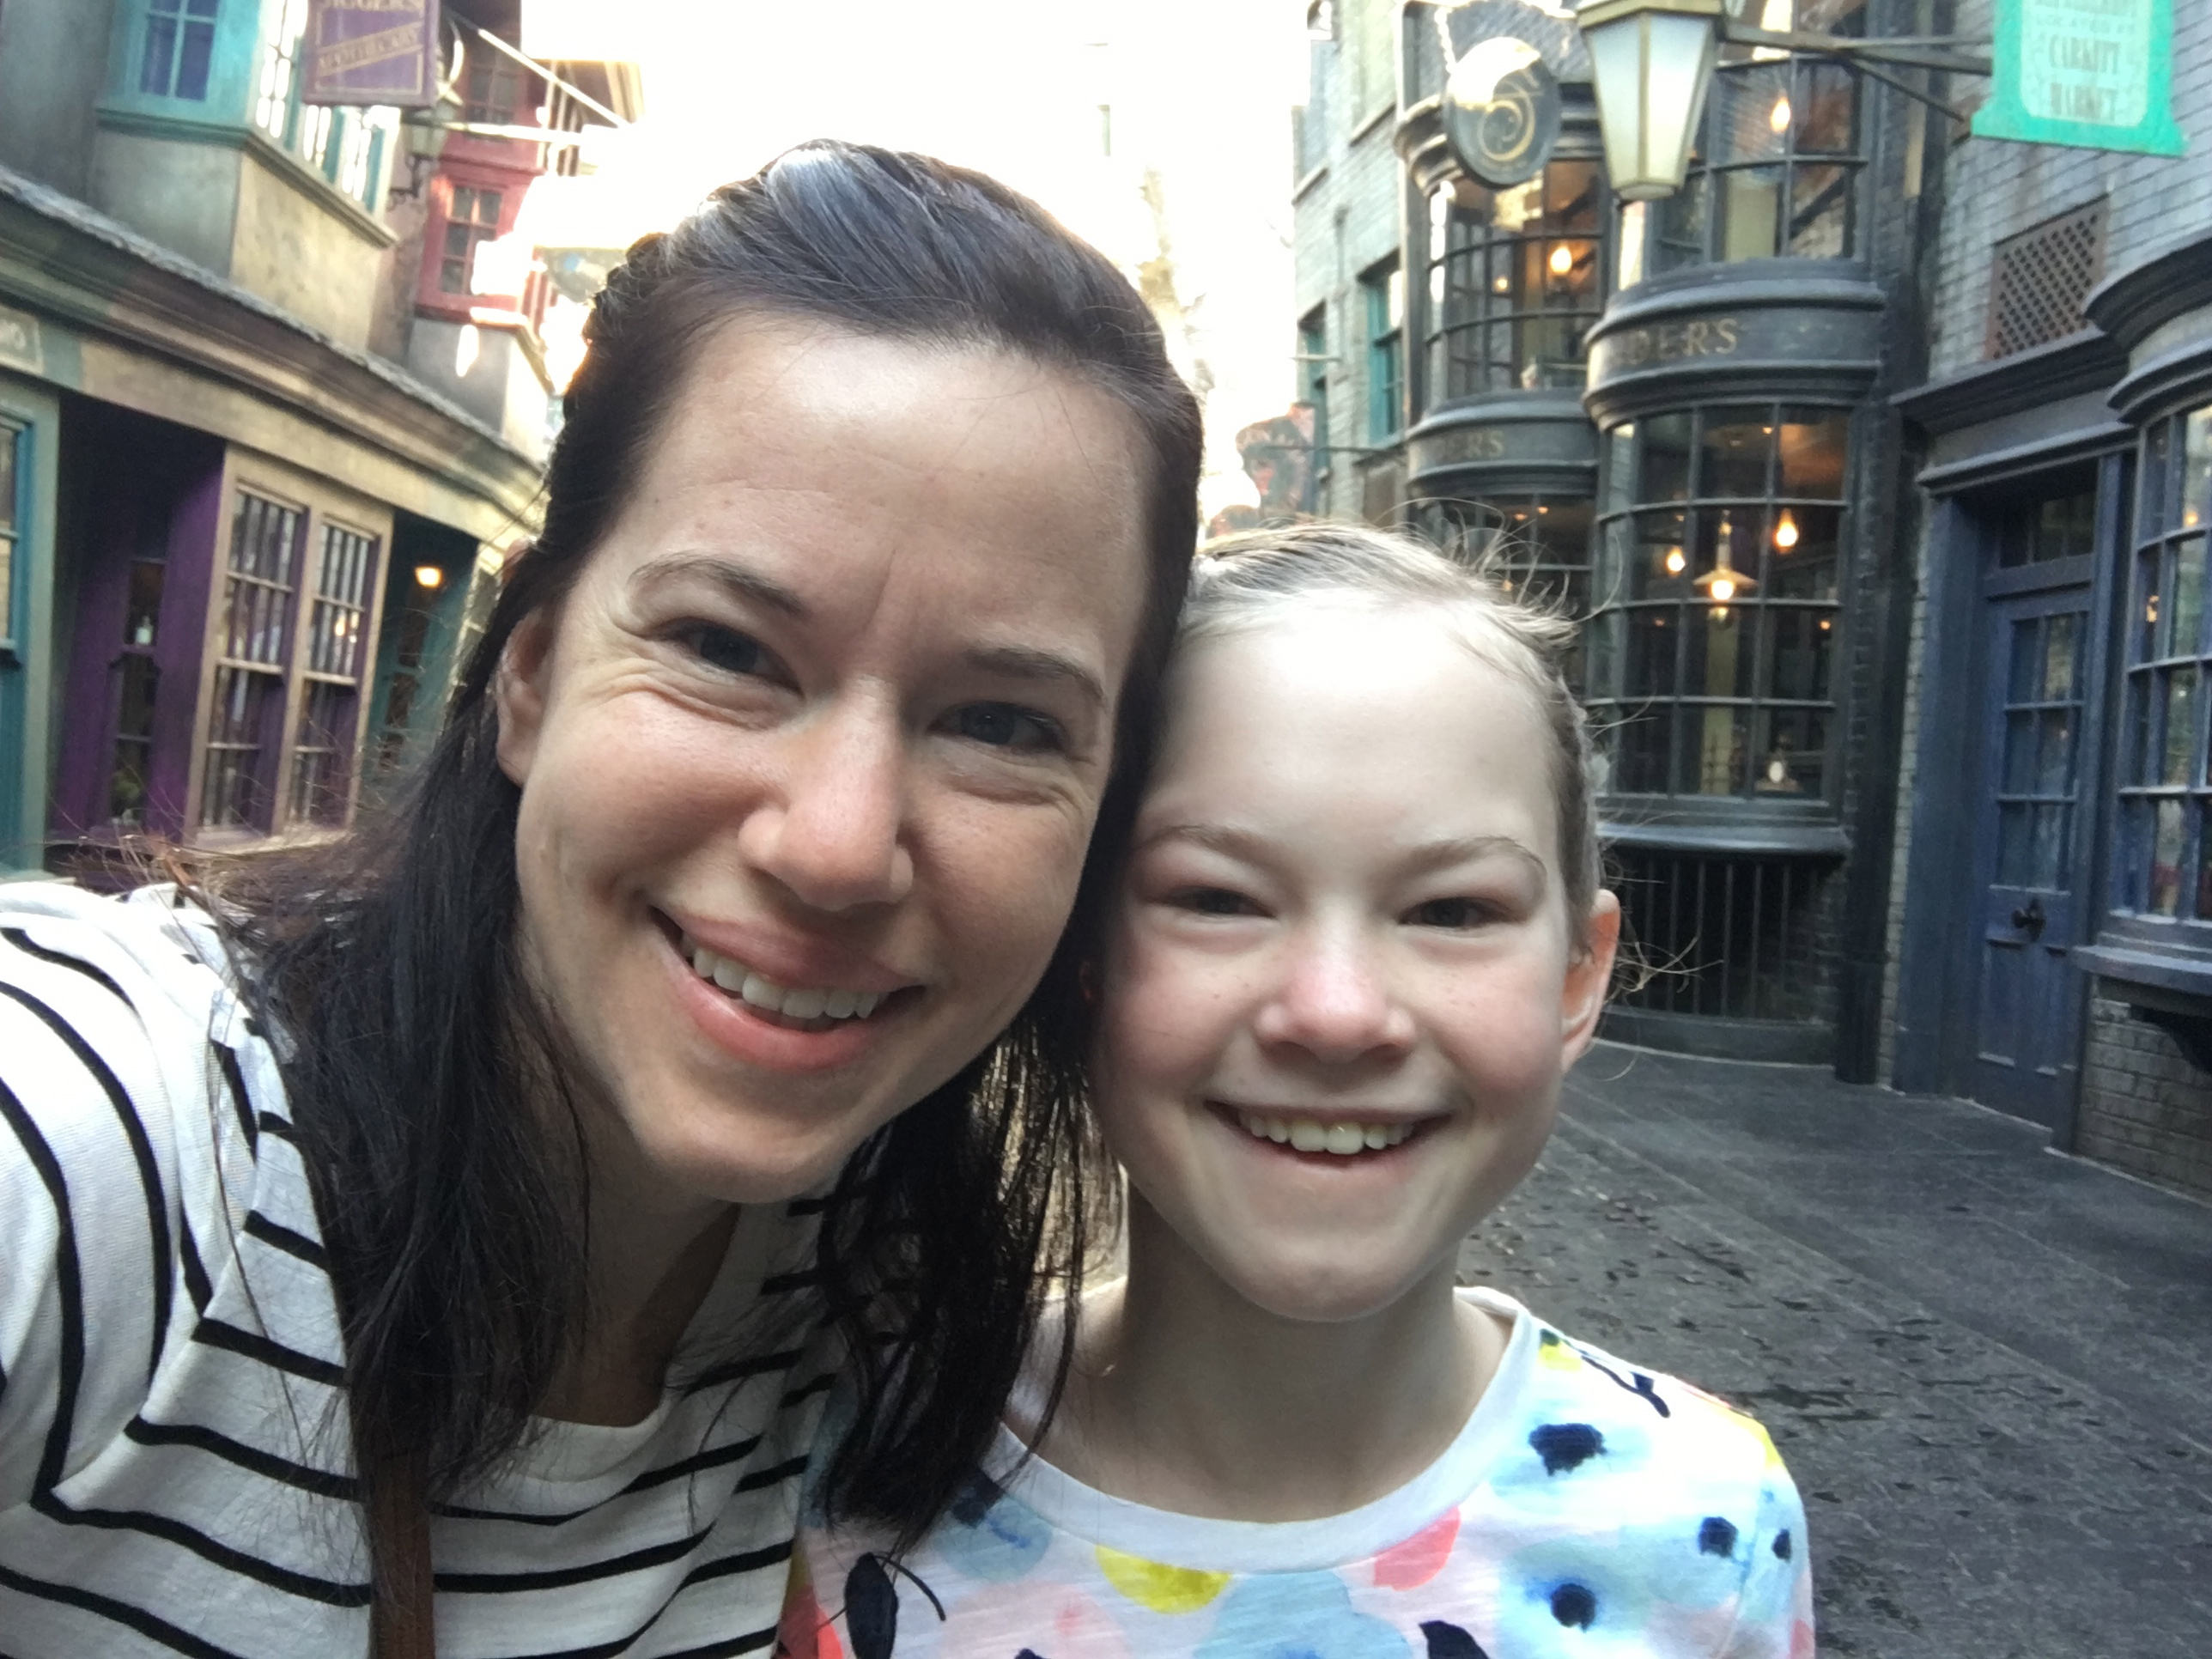 Diagon Alley!